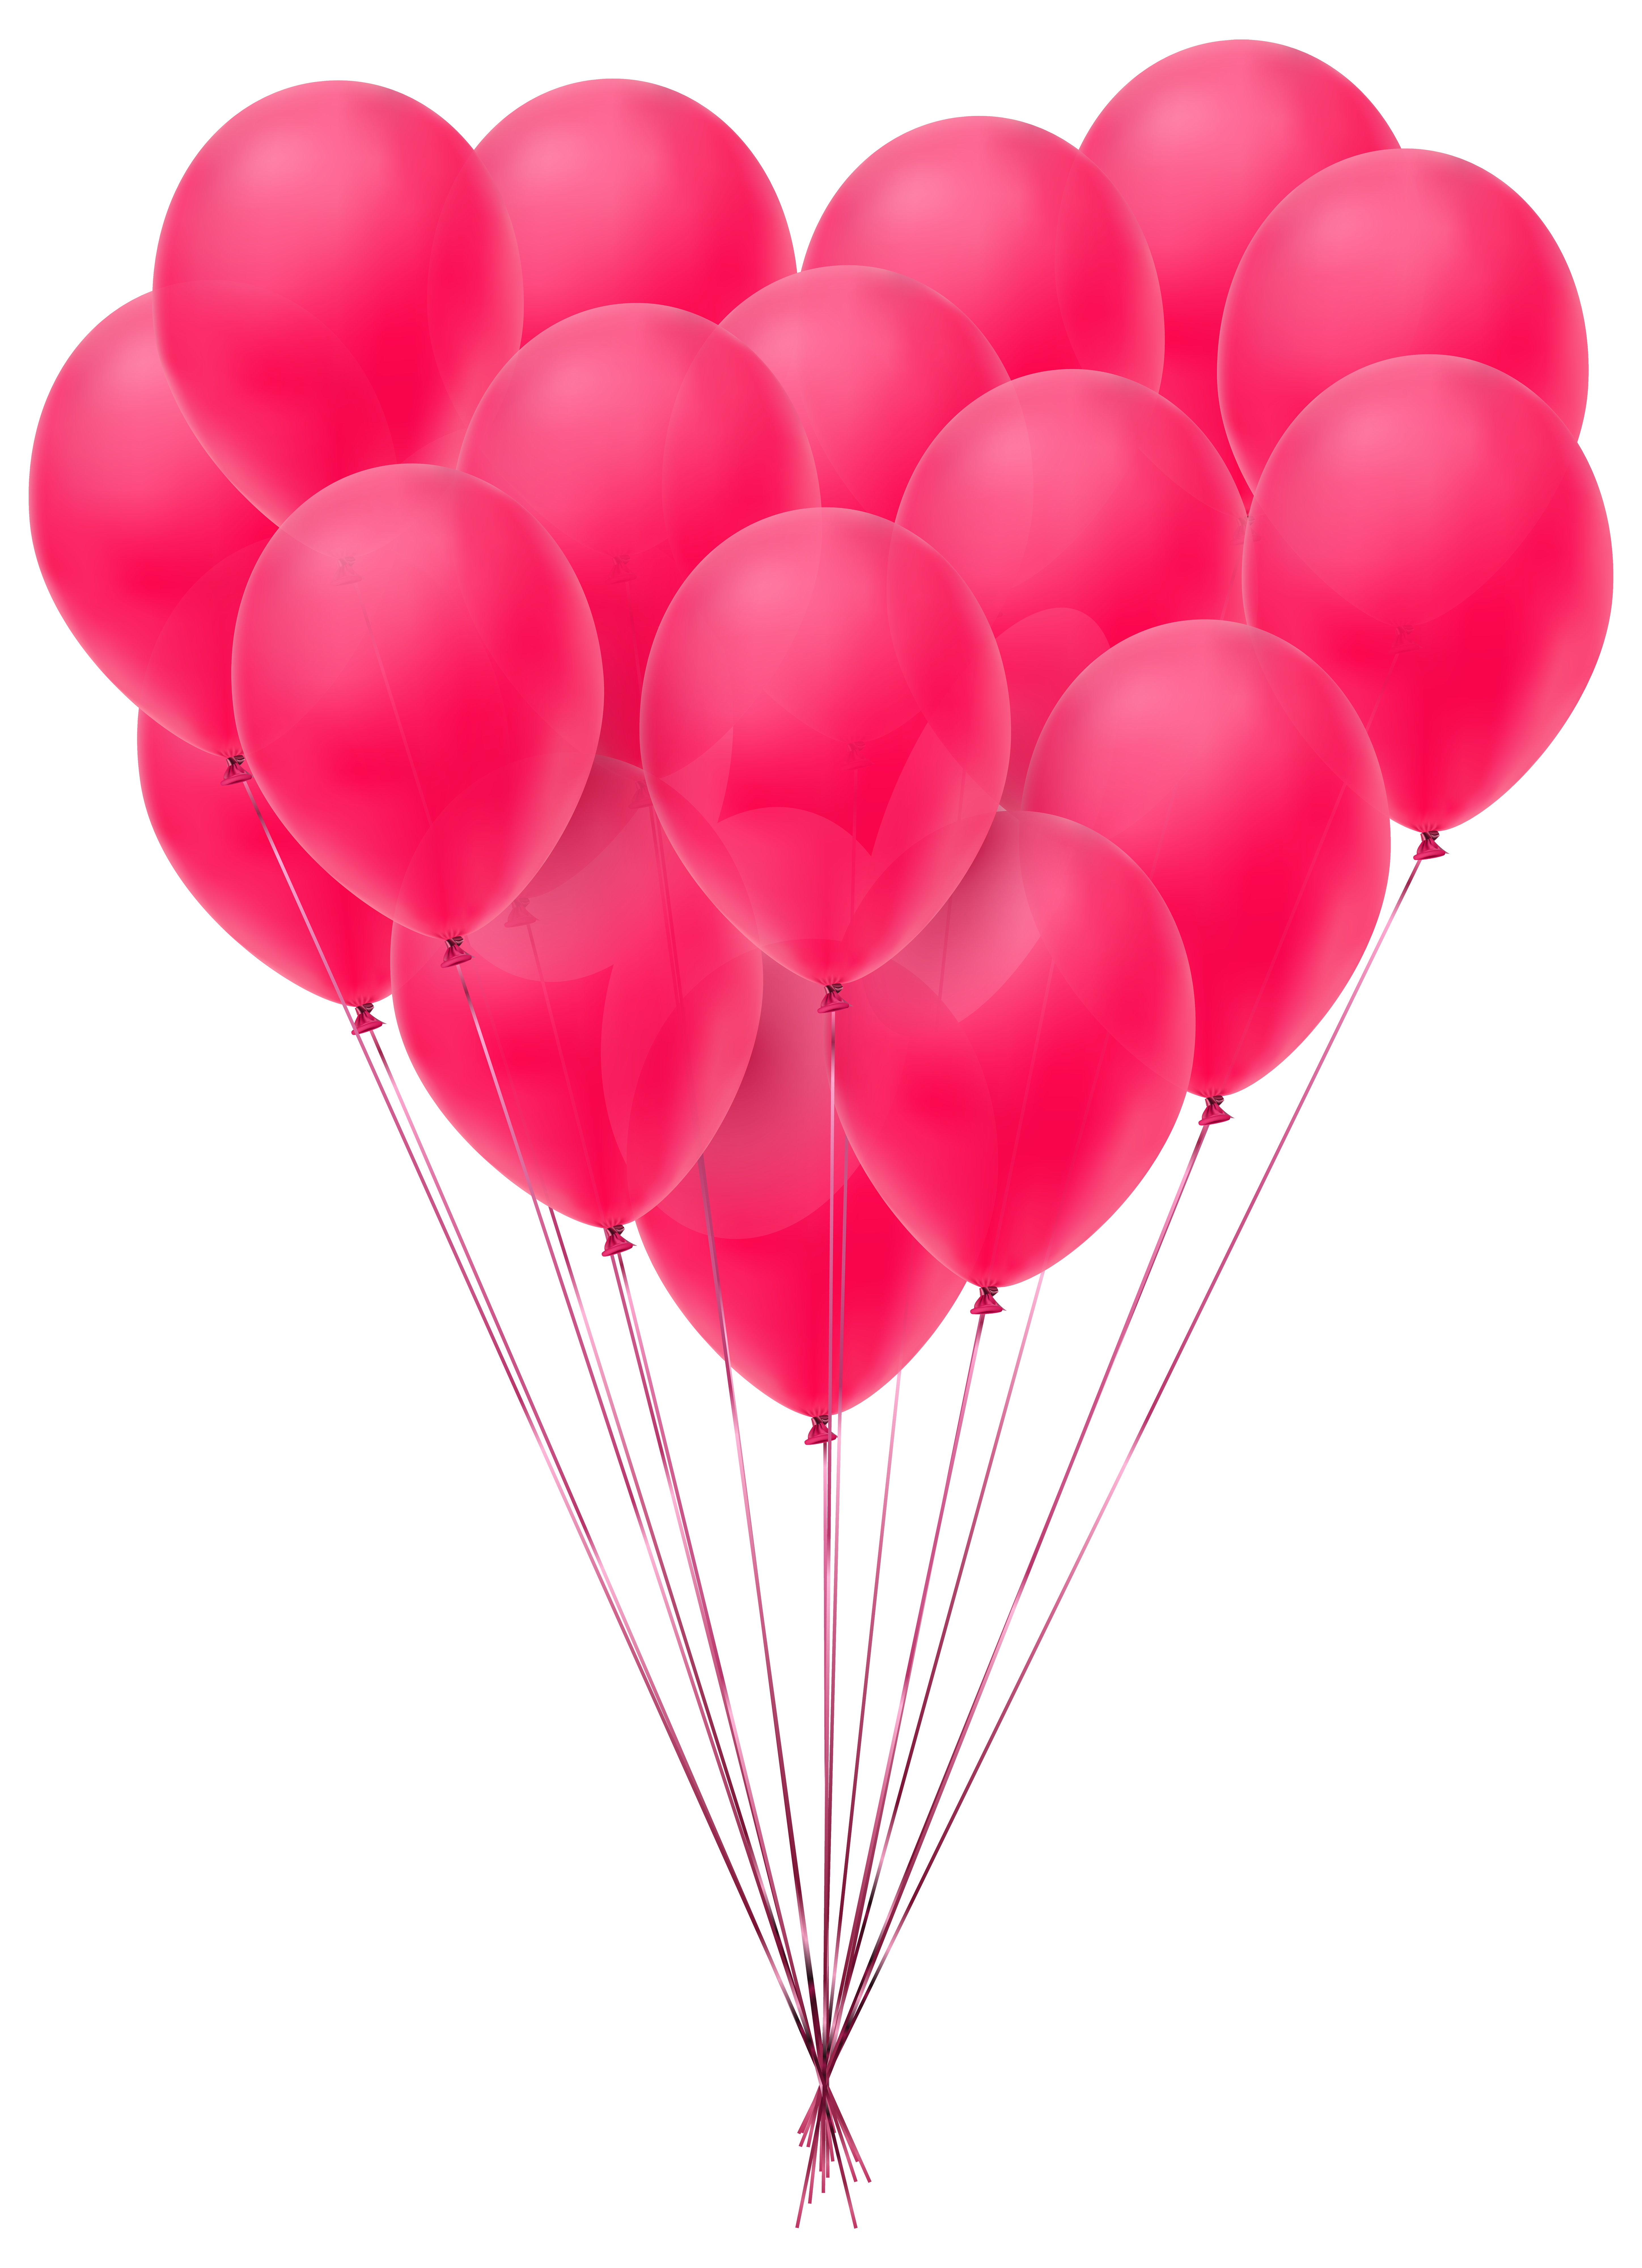 Valentine's Day Balloons Transparent PNG Clip Art Image.